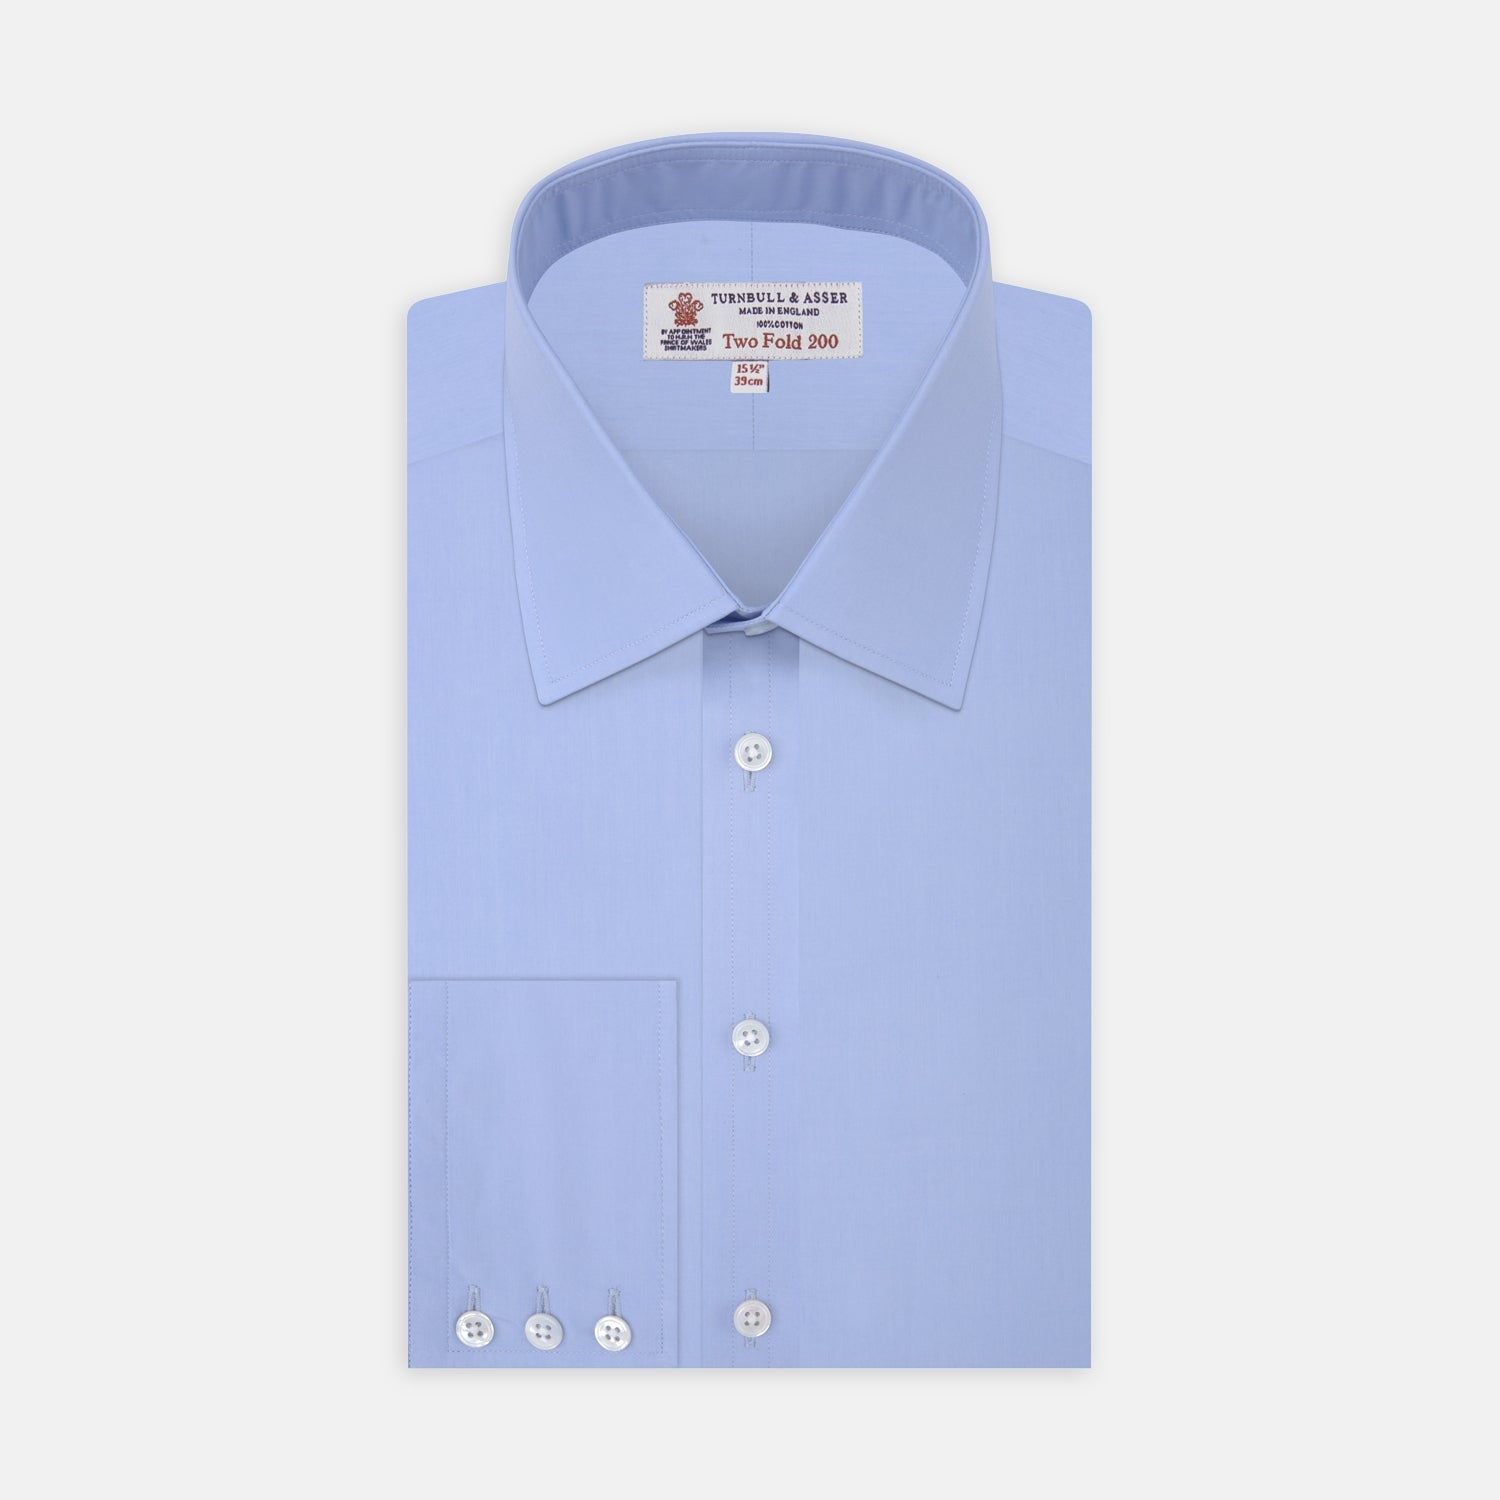 Two-Fold 200 Blue Cotton Shirt with T&A Collar and 3-Button Cuffs